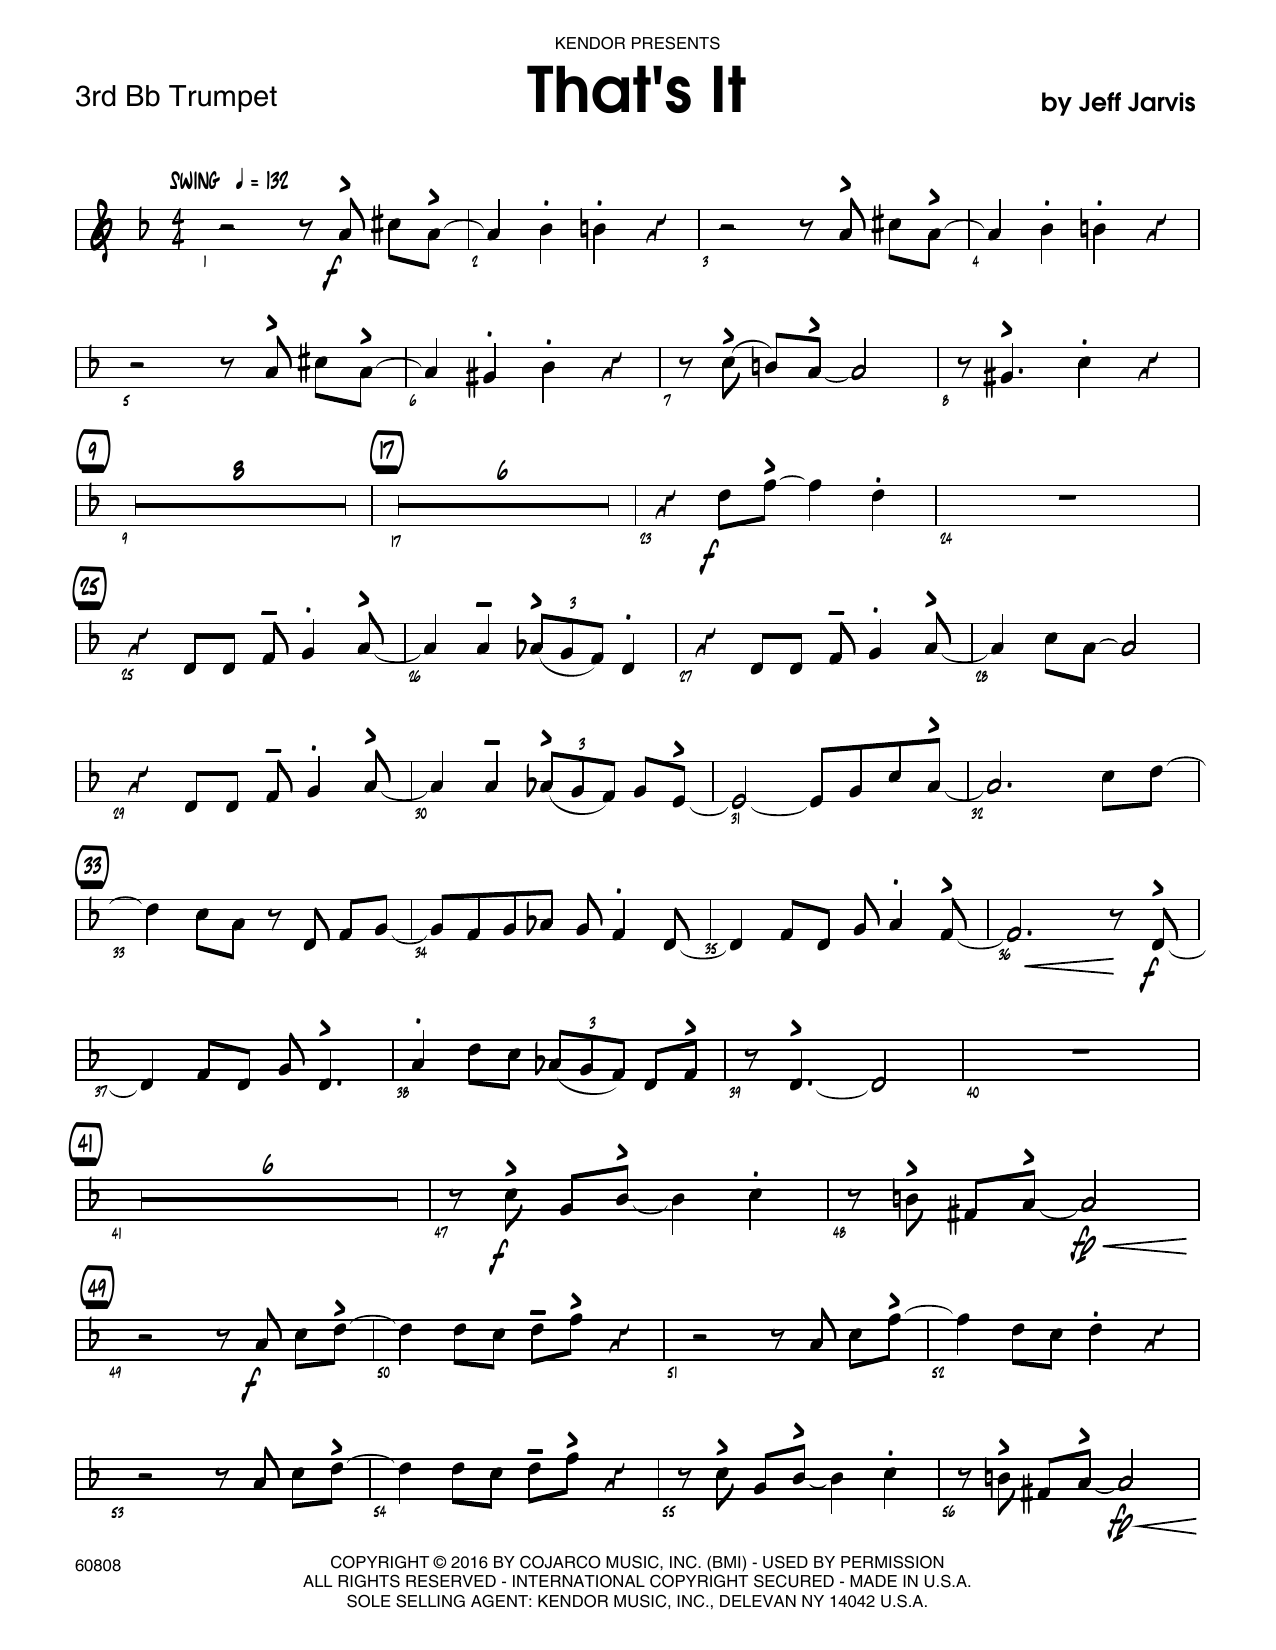 That's It - 3rd Bb Trumpet Sheet Music